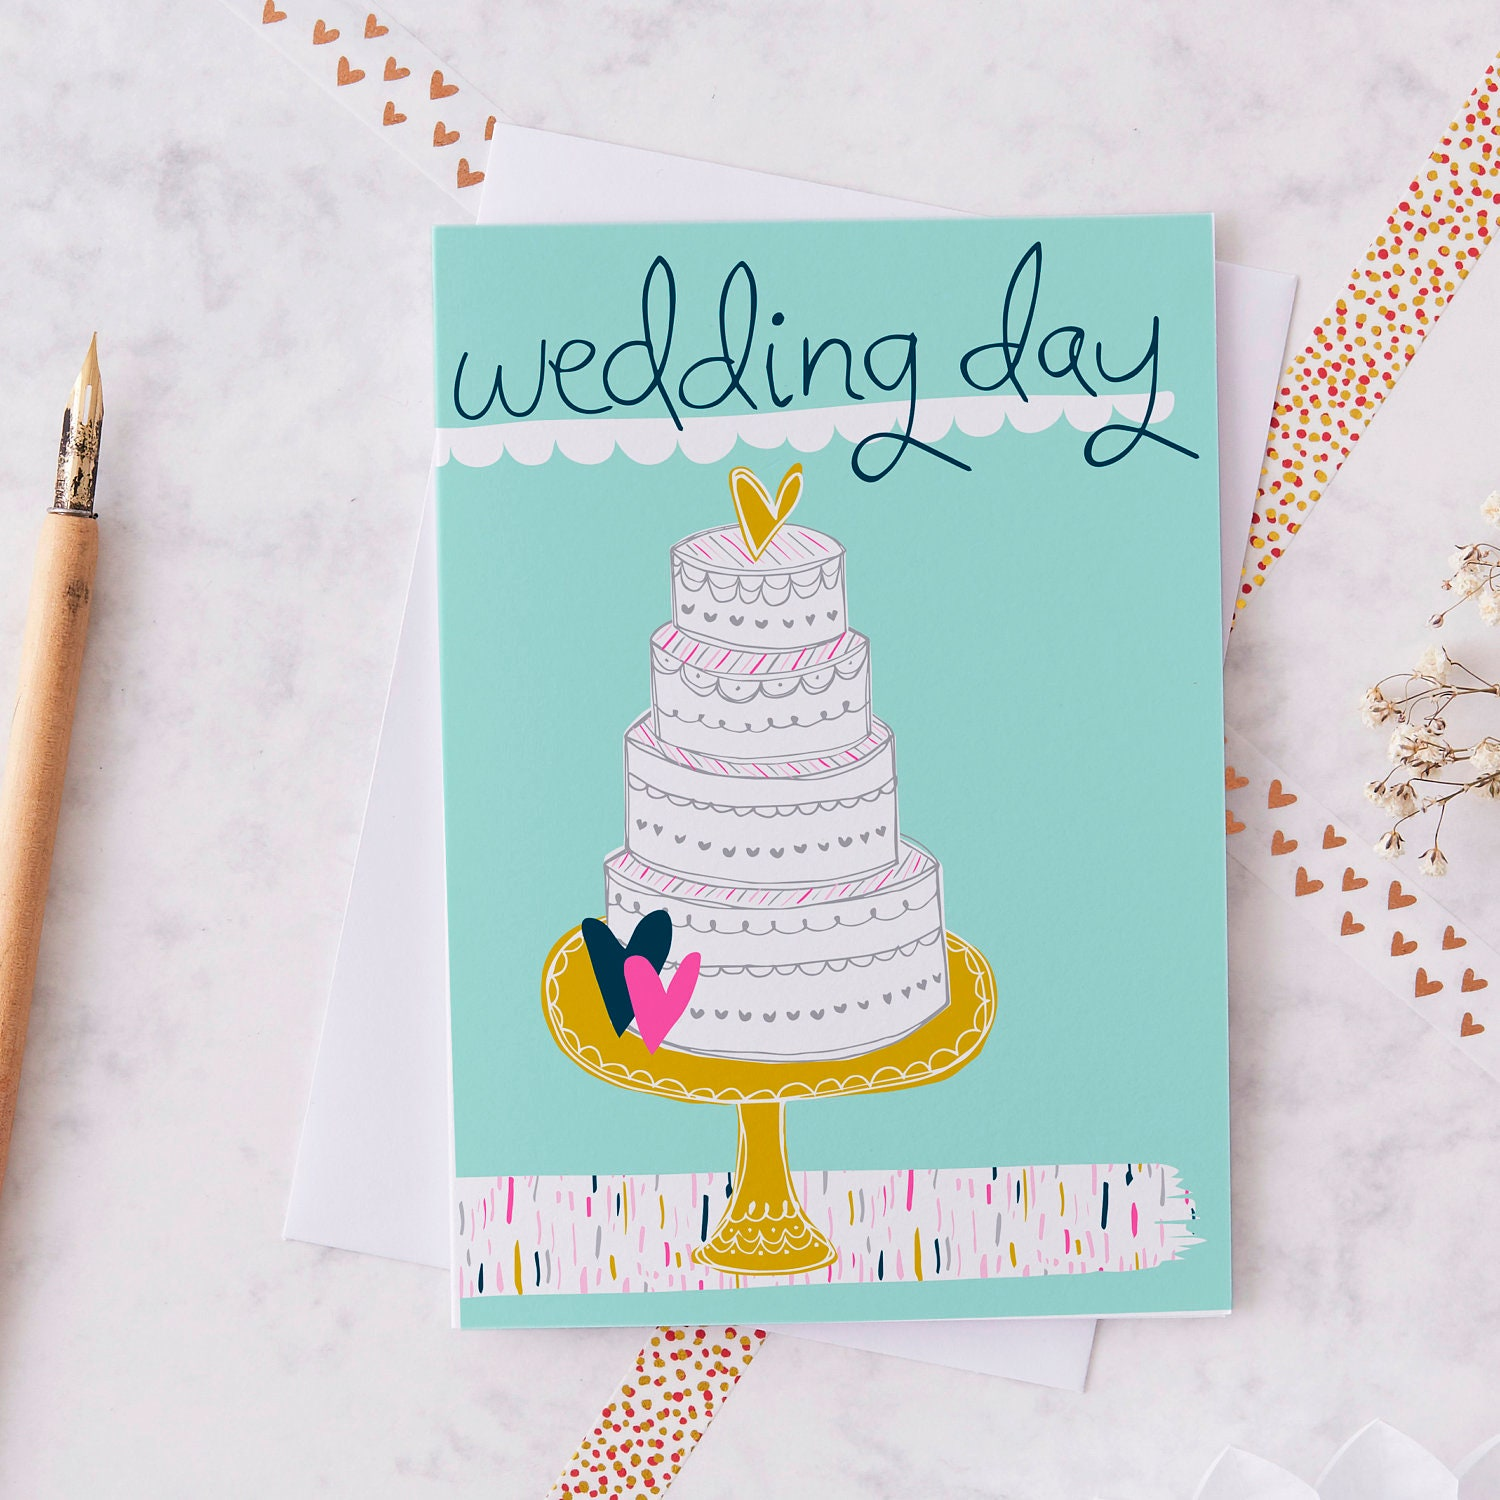 Wedding day greetings card modern wedding card cute wedding description this wedding day card m4hsunfo Choice Image